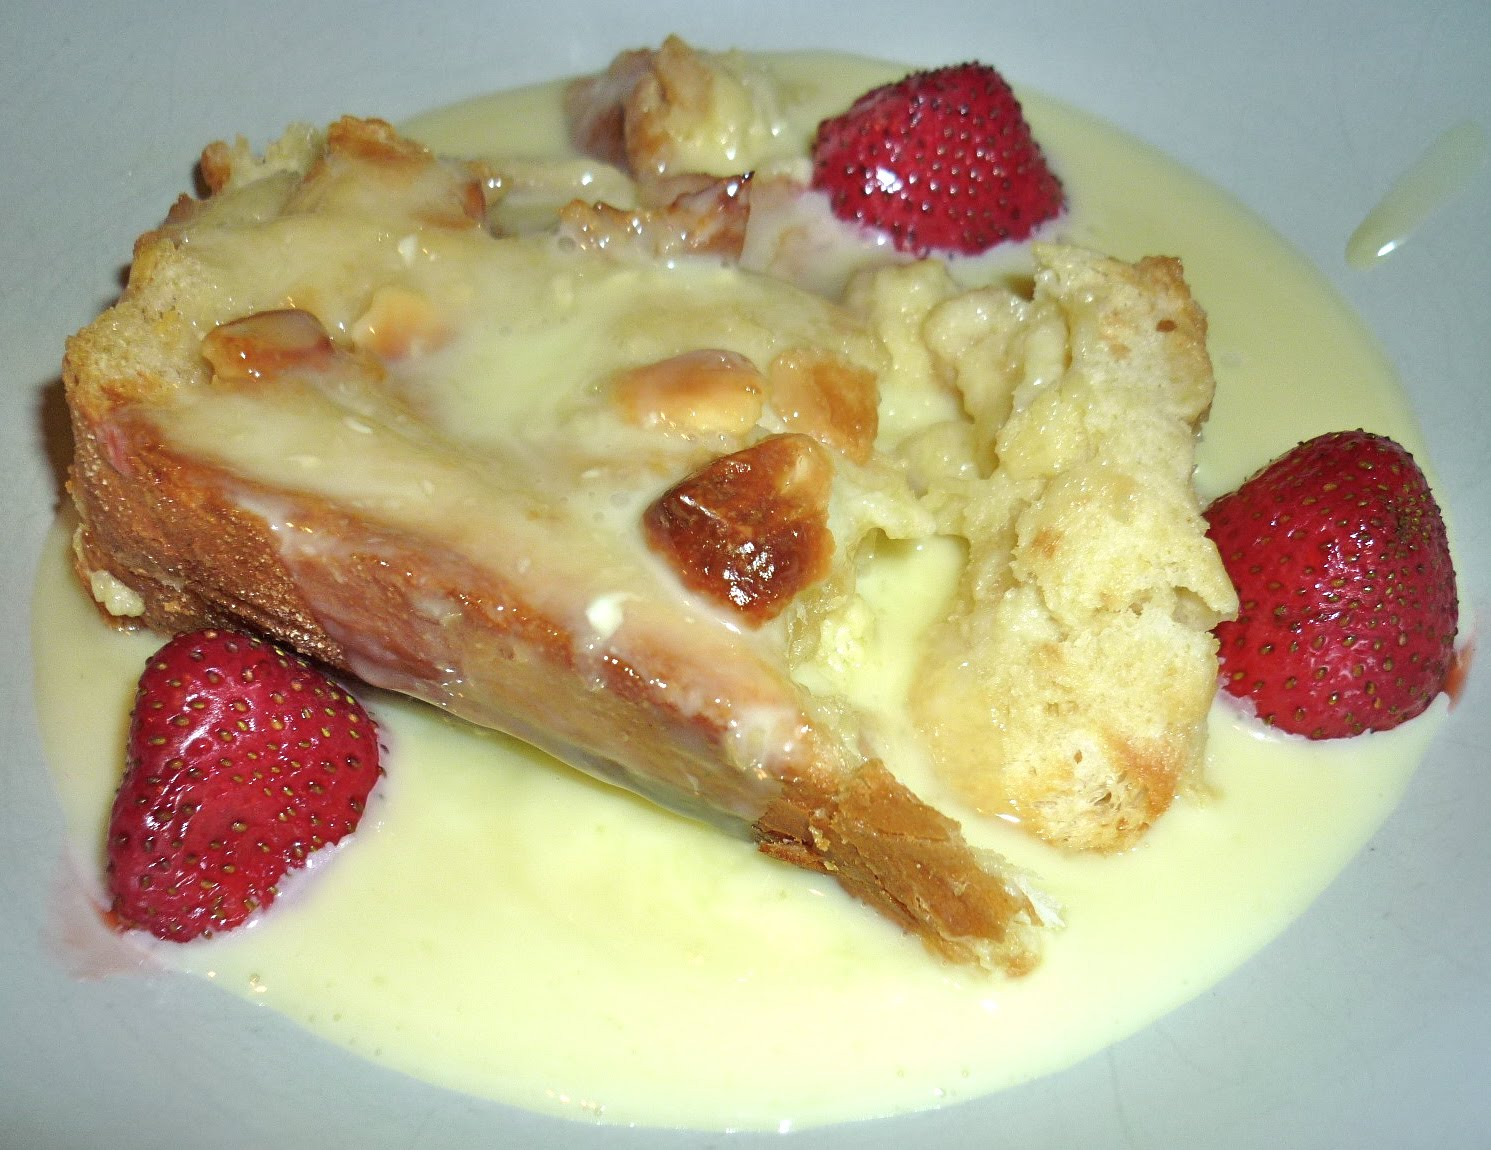 Smy Chutney: White Chocolate Bread Pudding aka WCBP